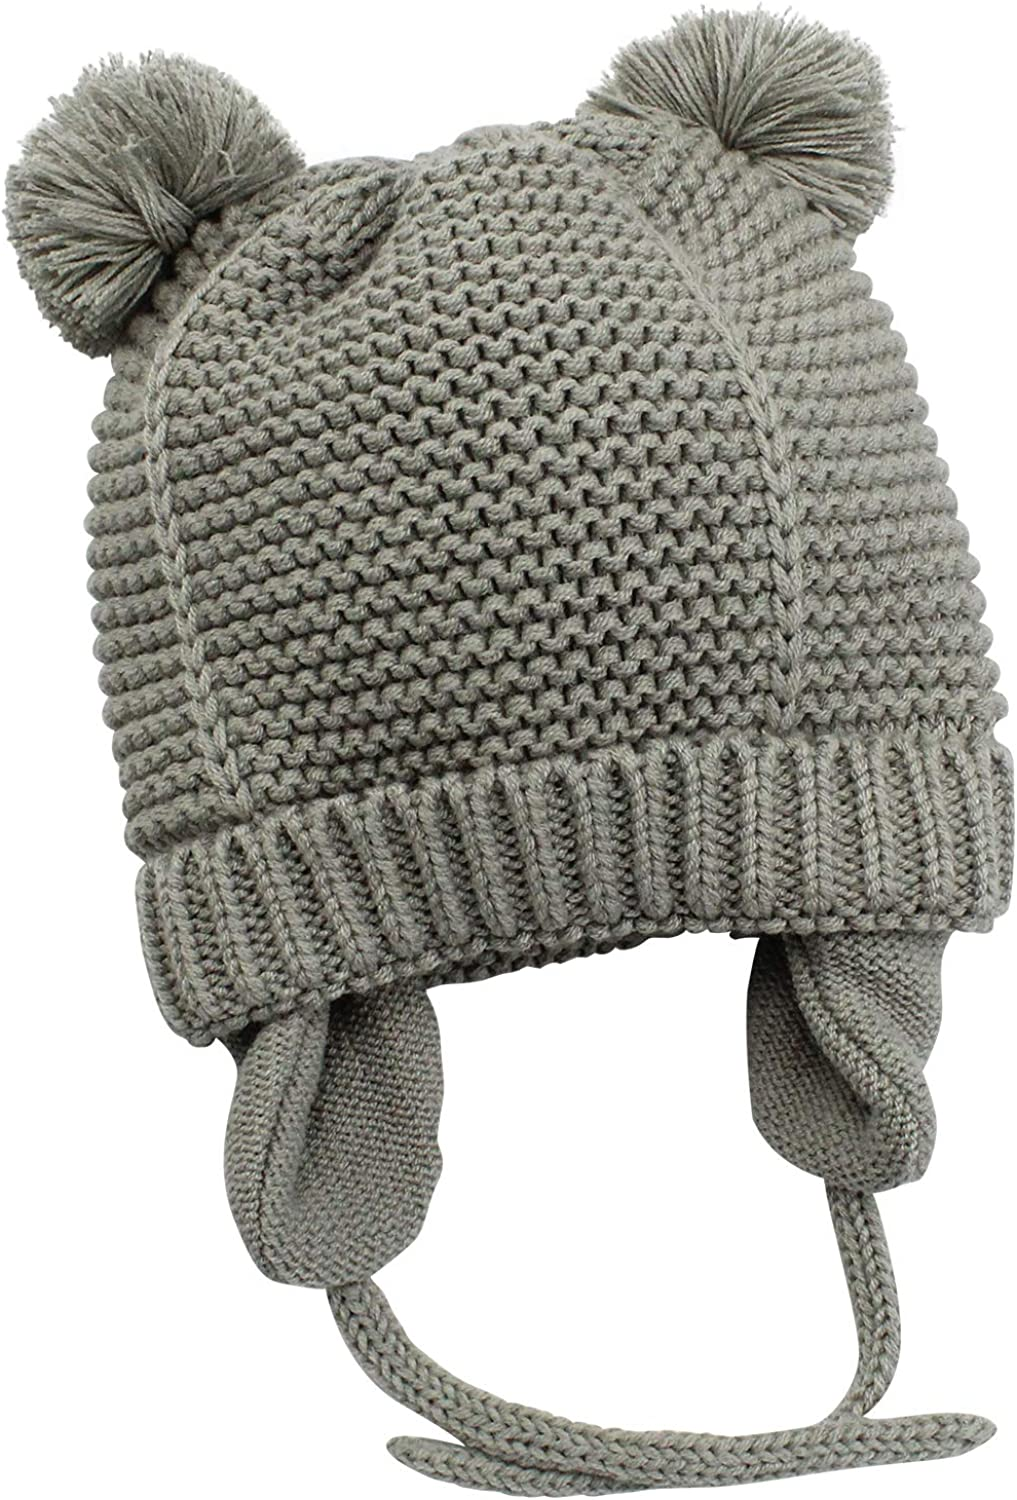 Baby Beanie Hat for Toddlers 2-3 Years